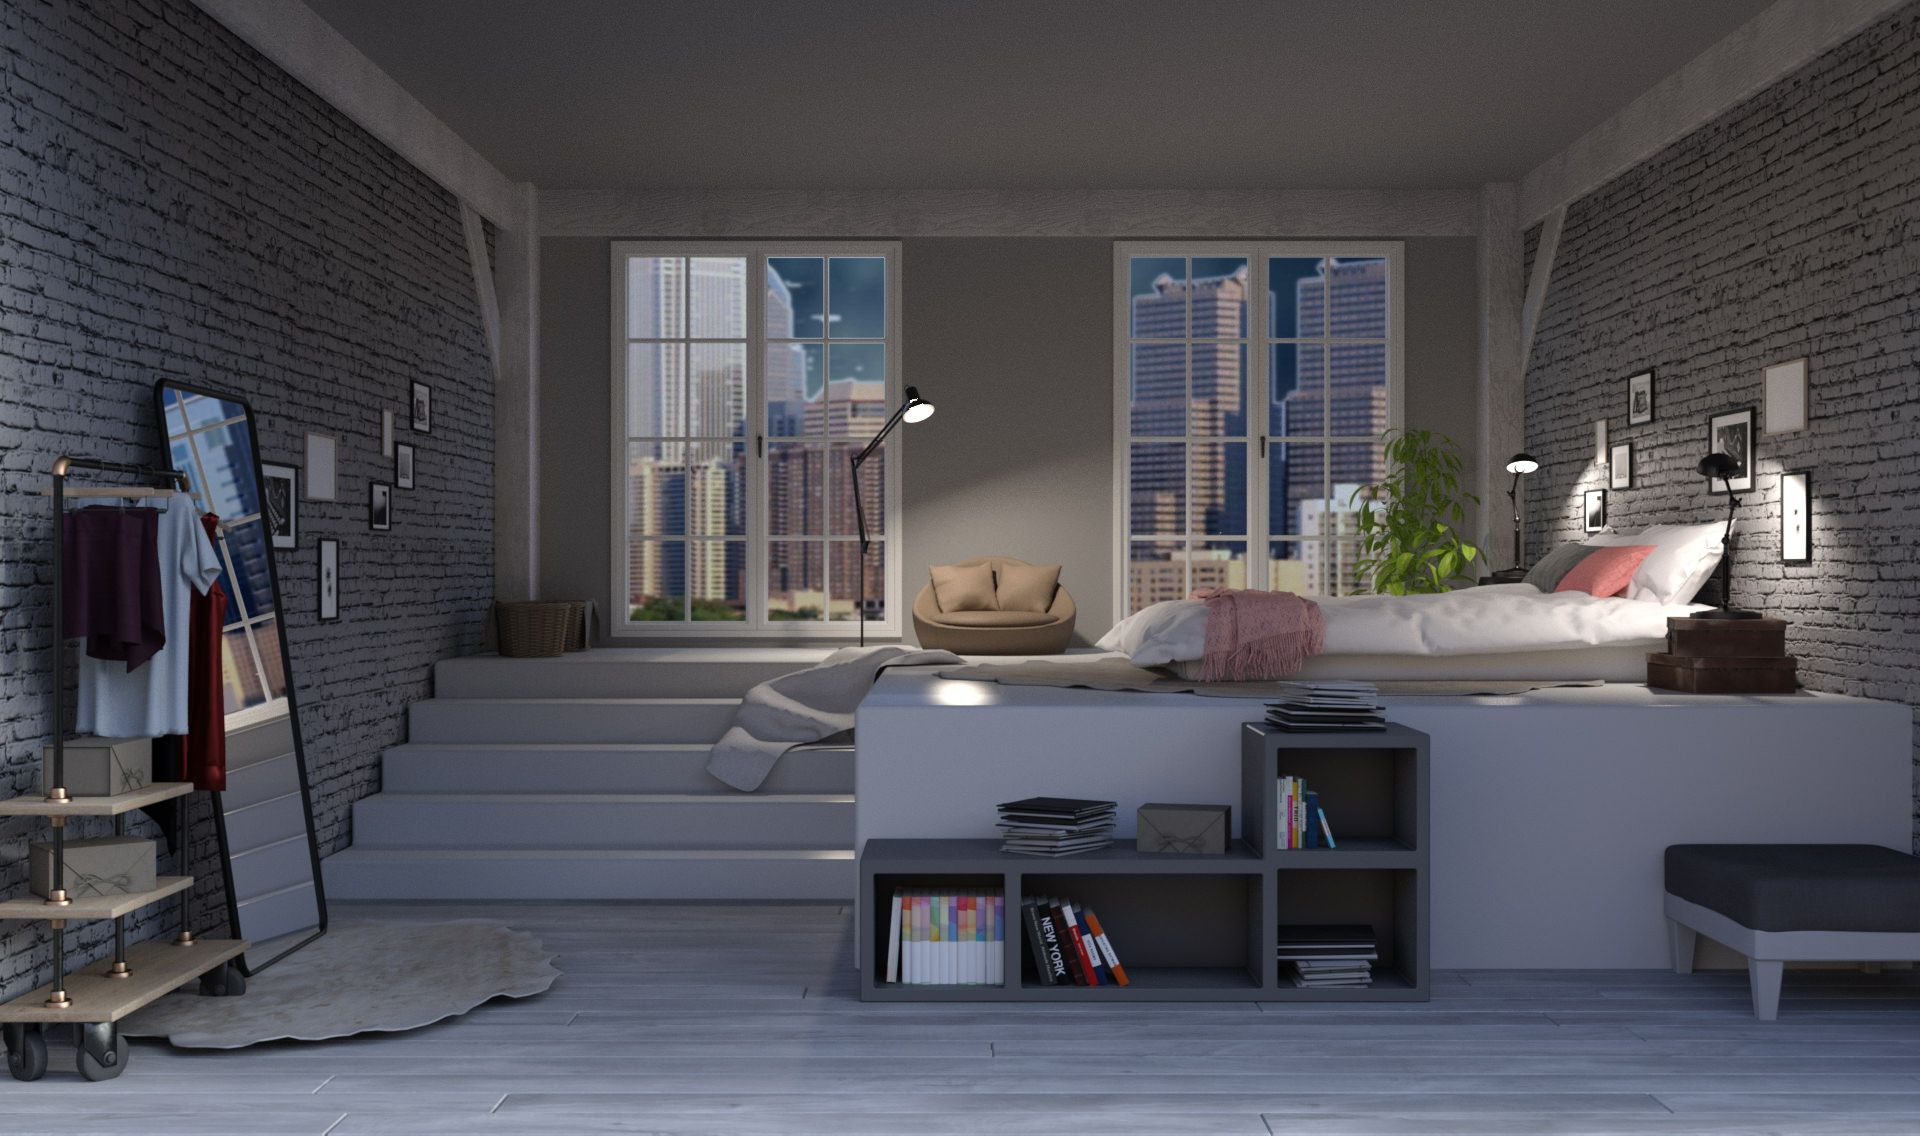 Int Loft Bedroom Full View Night Episode Background In 2019